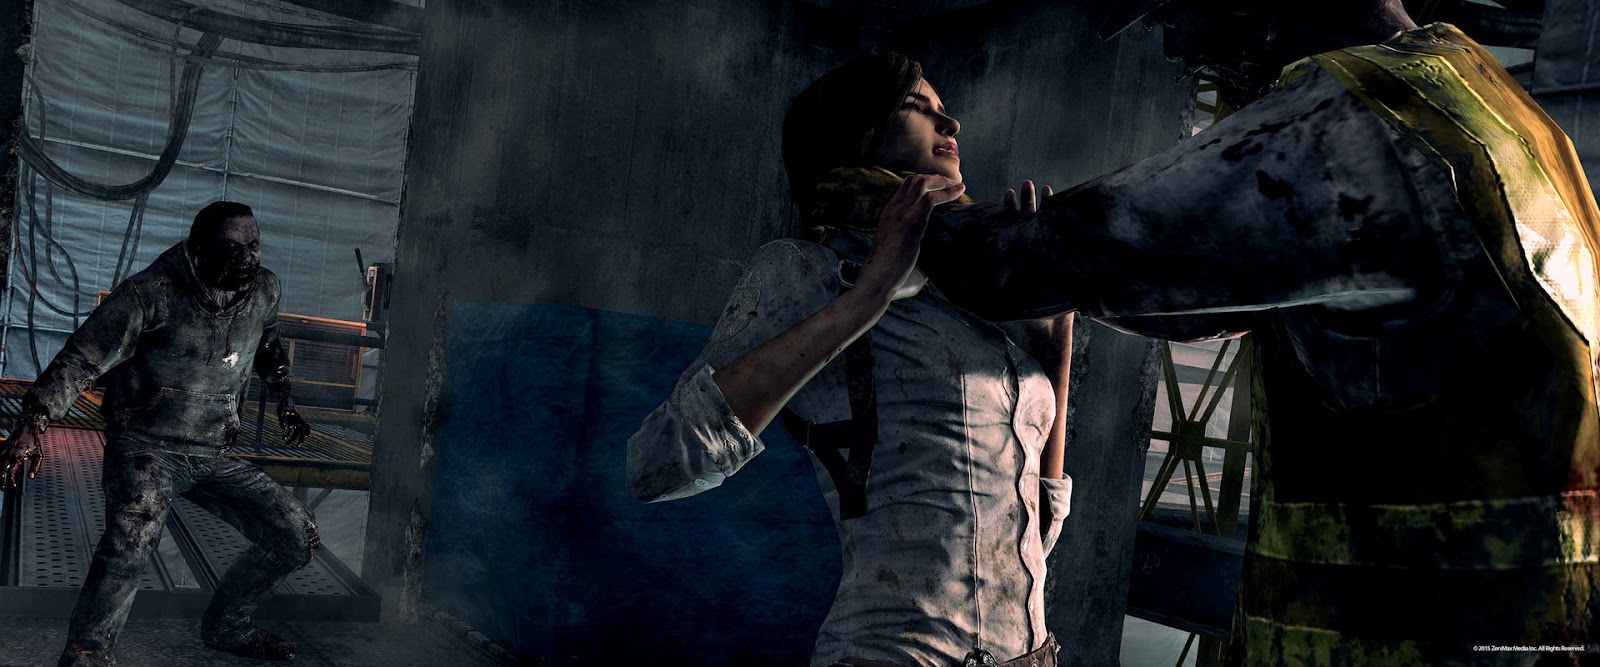 The Evil Within The Consequence juego completo en 1 solo link